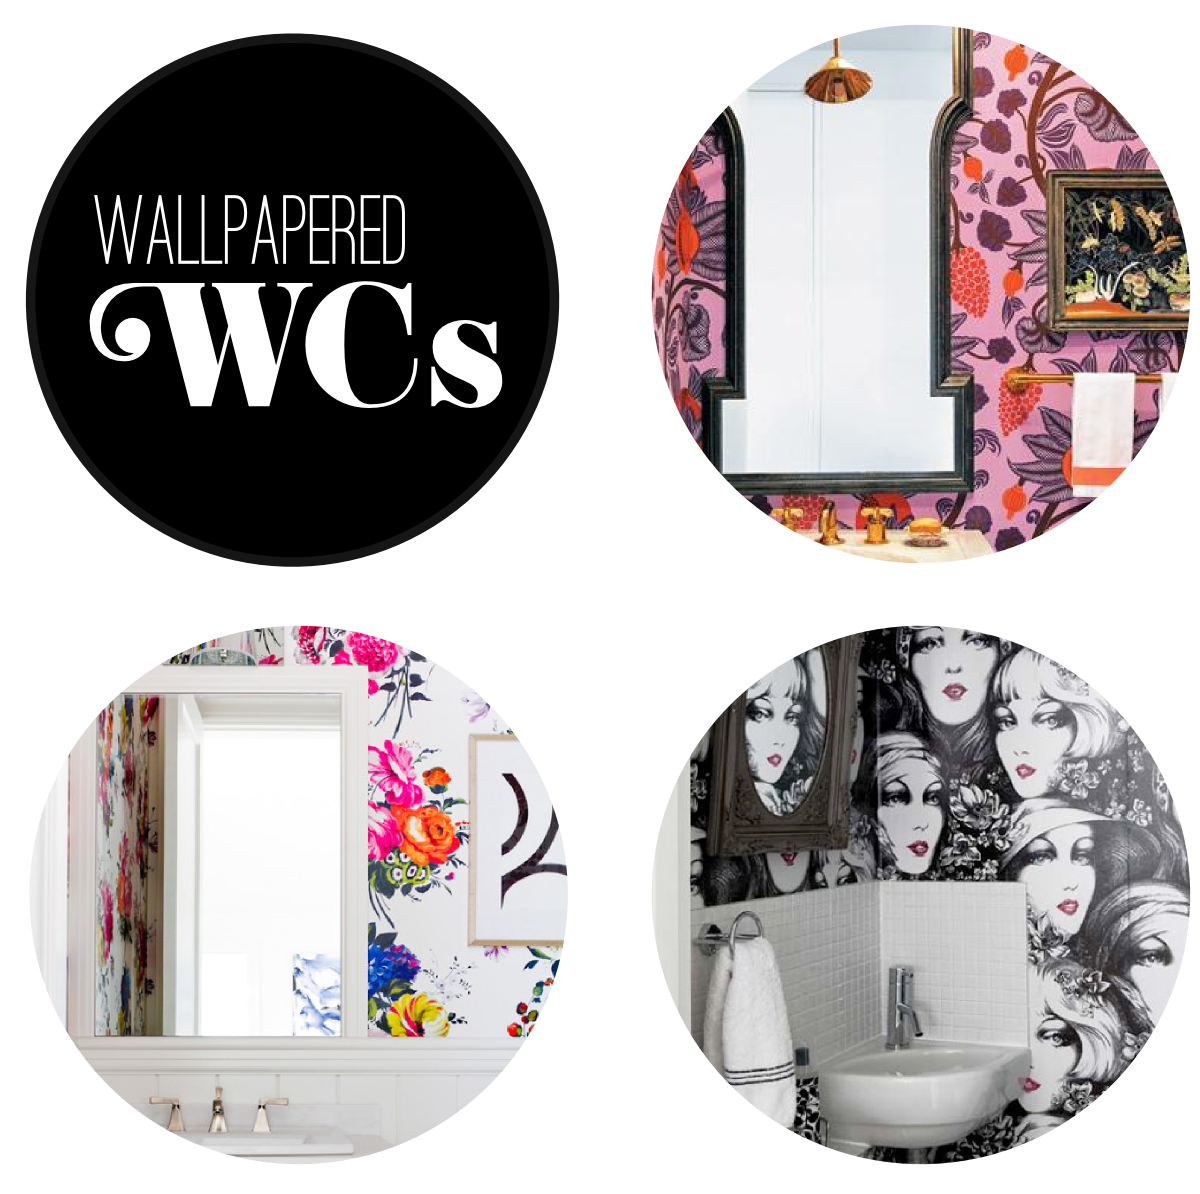 Fabric Paper Glue | Wallpapered WCs